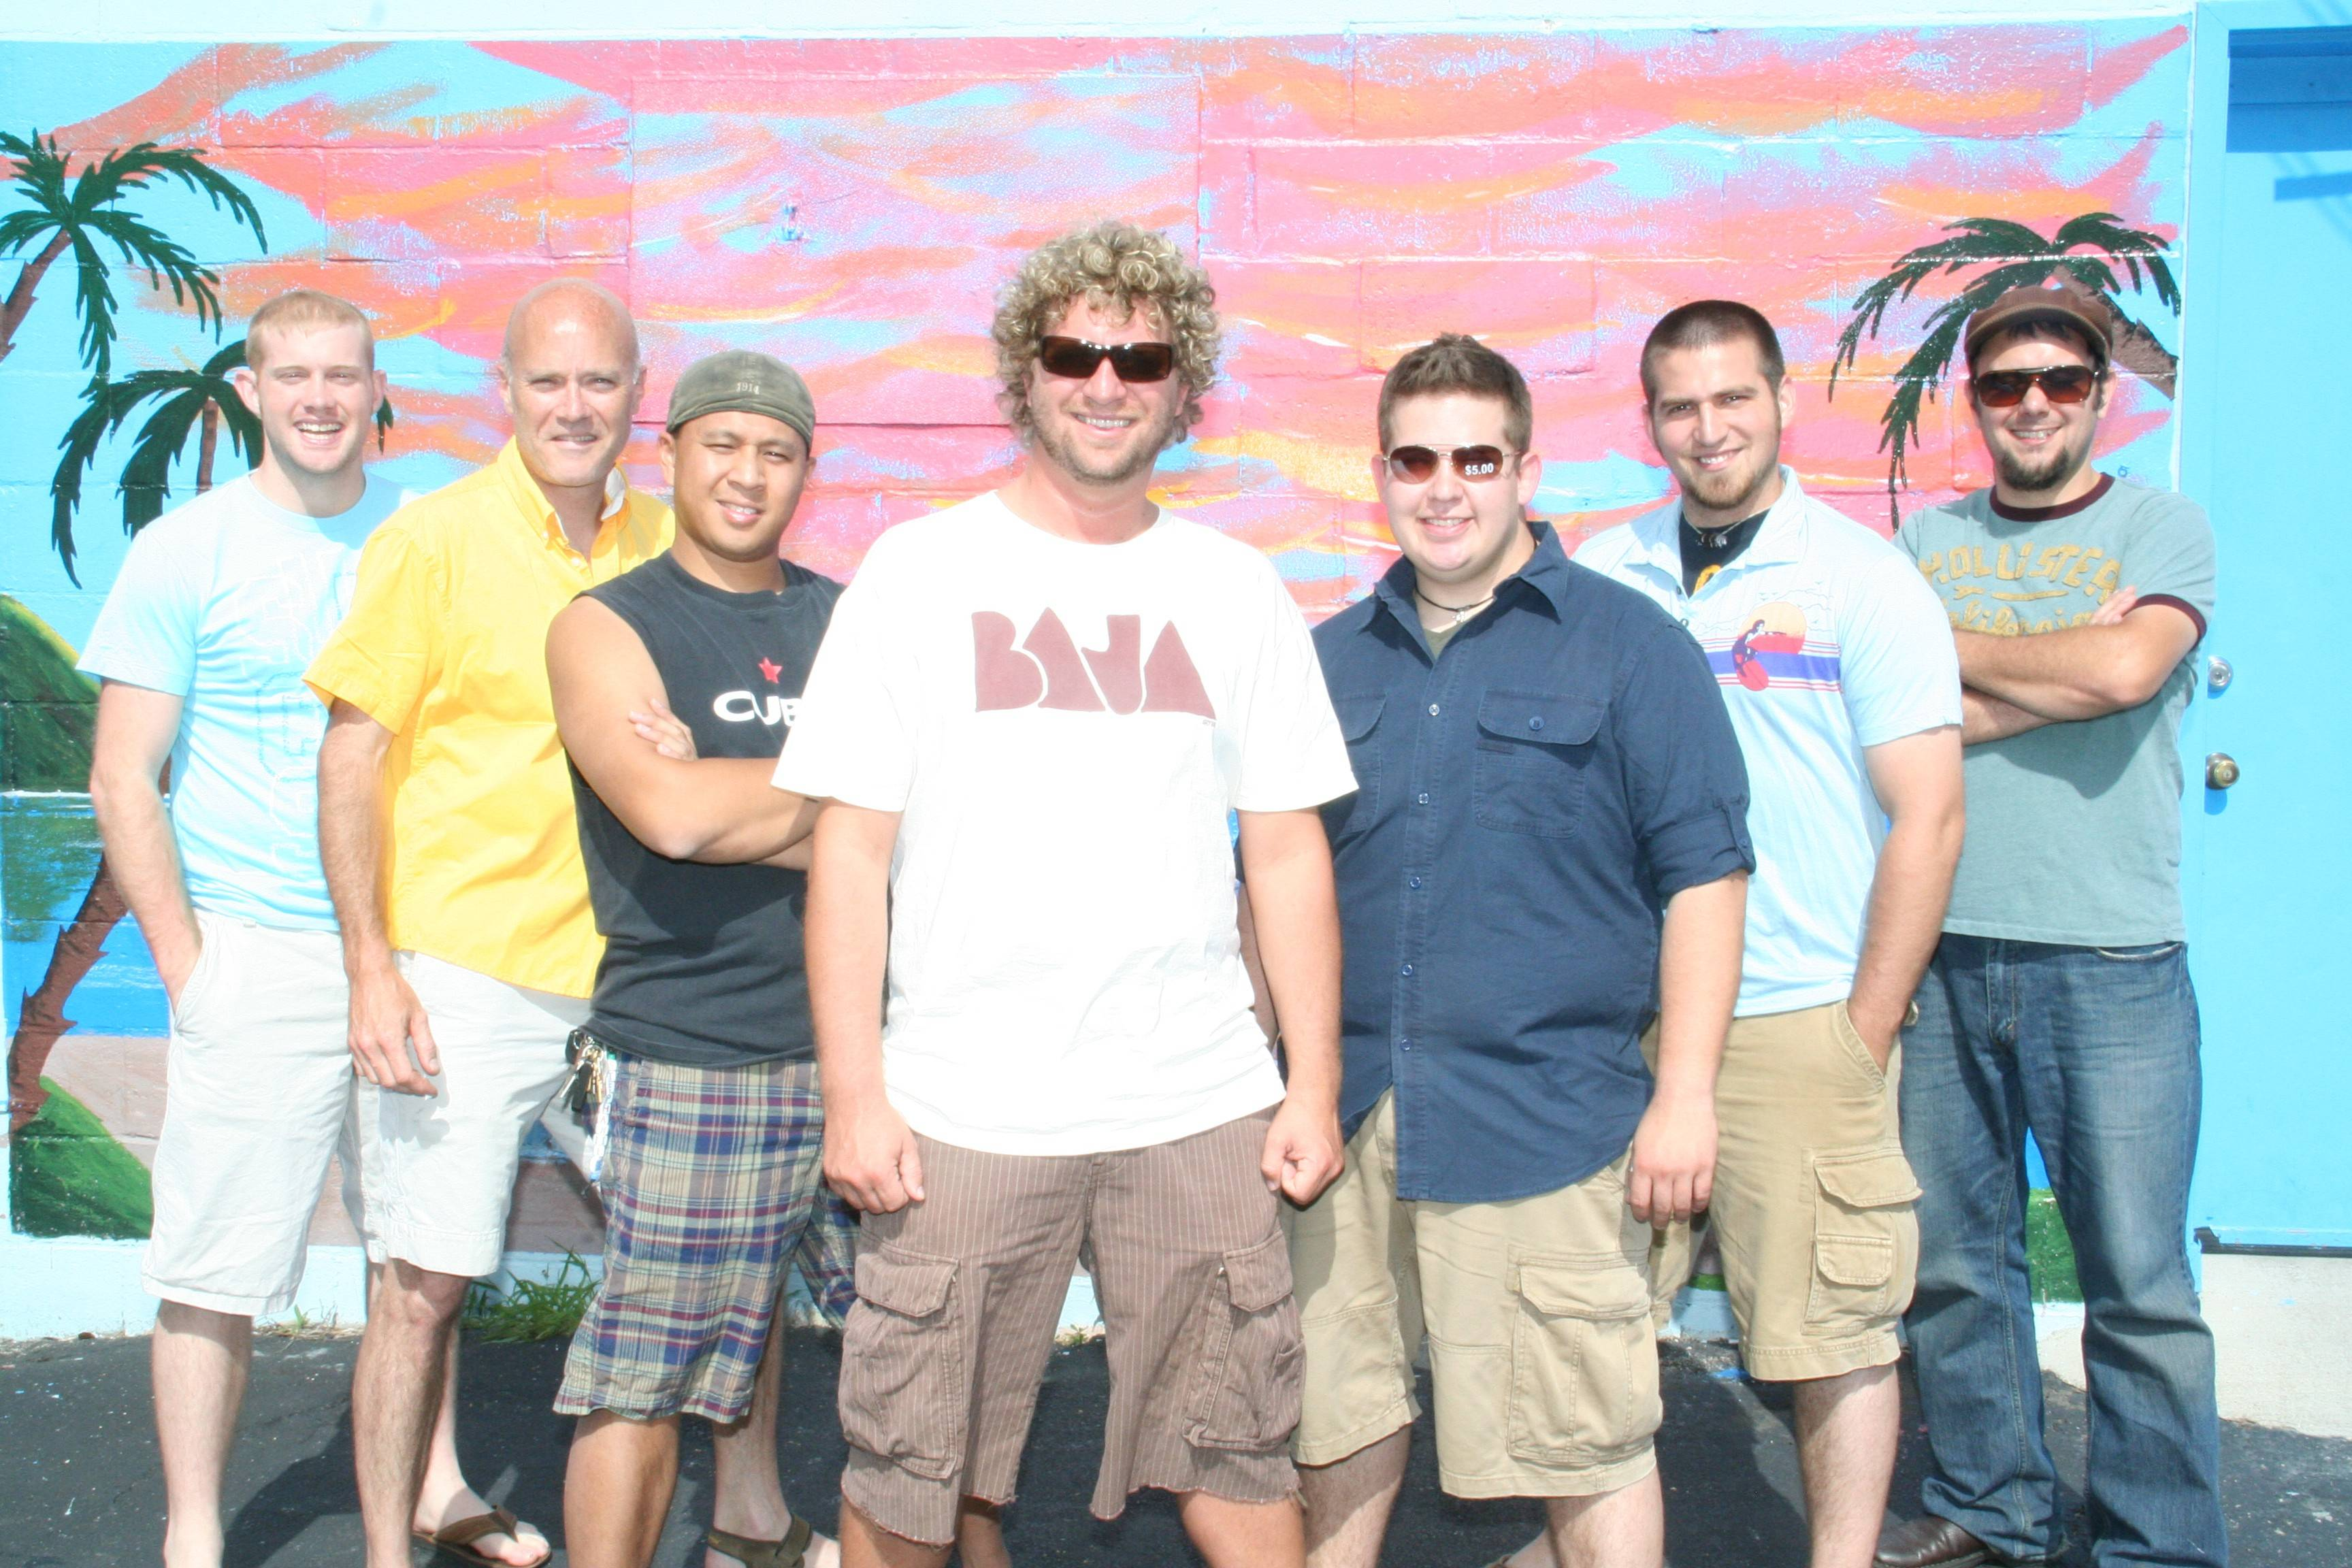 Johnny Russler and The Beach Bum Band headline on the season's opening Rockin' in the Park concert at MB Financial Park in Rosemont.